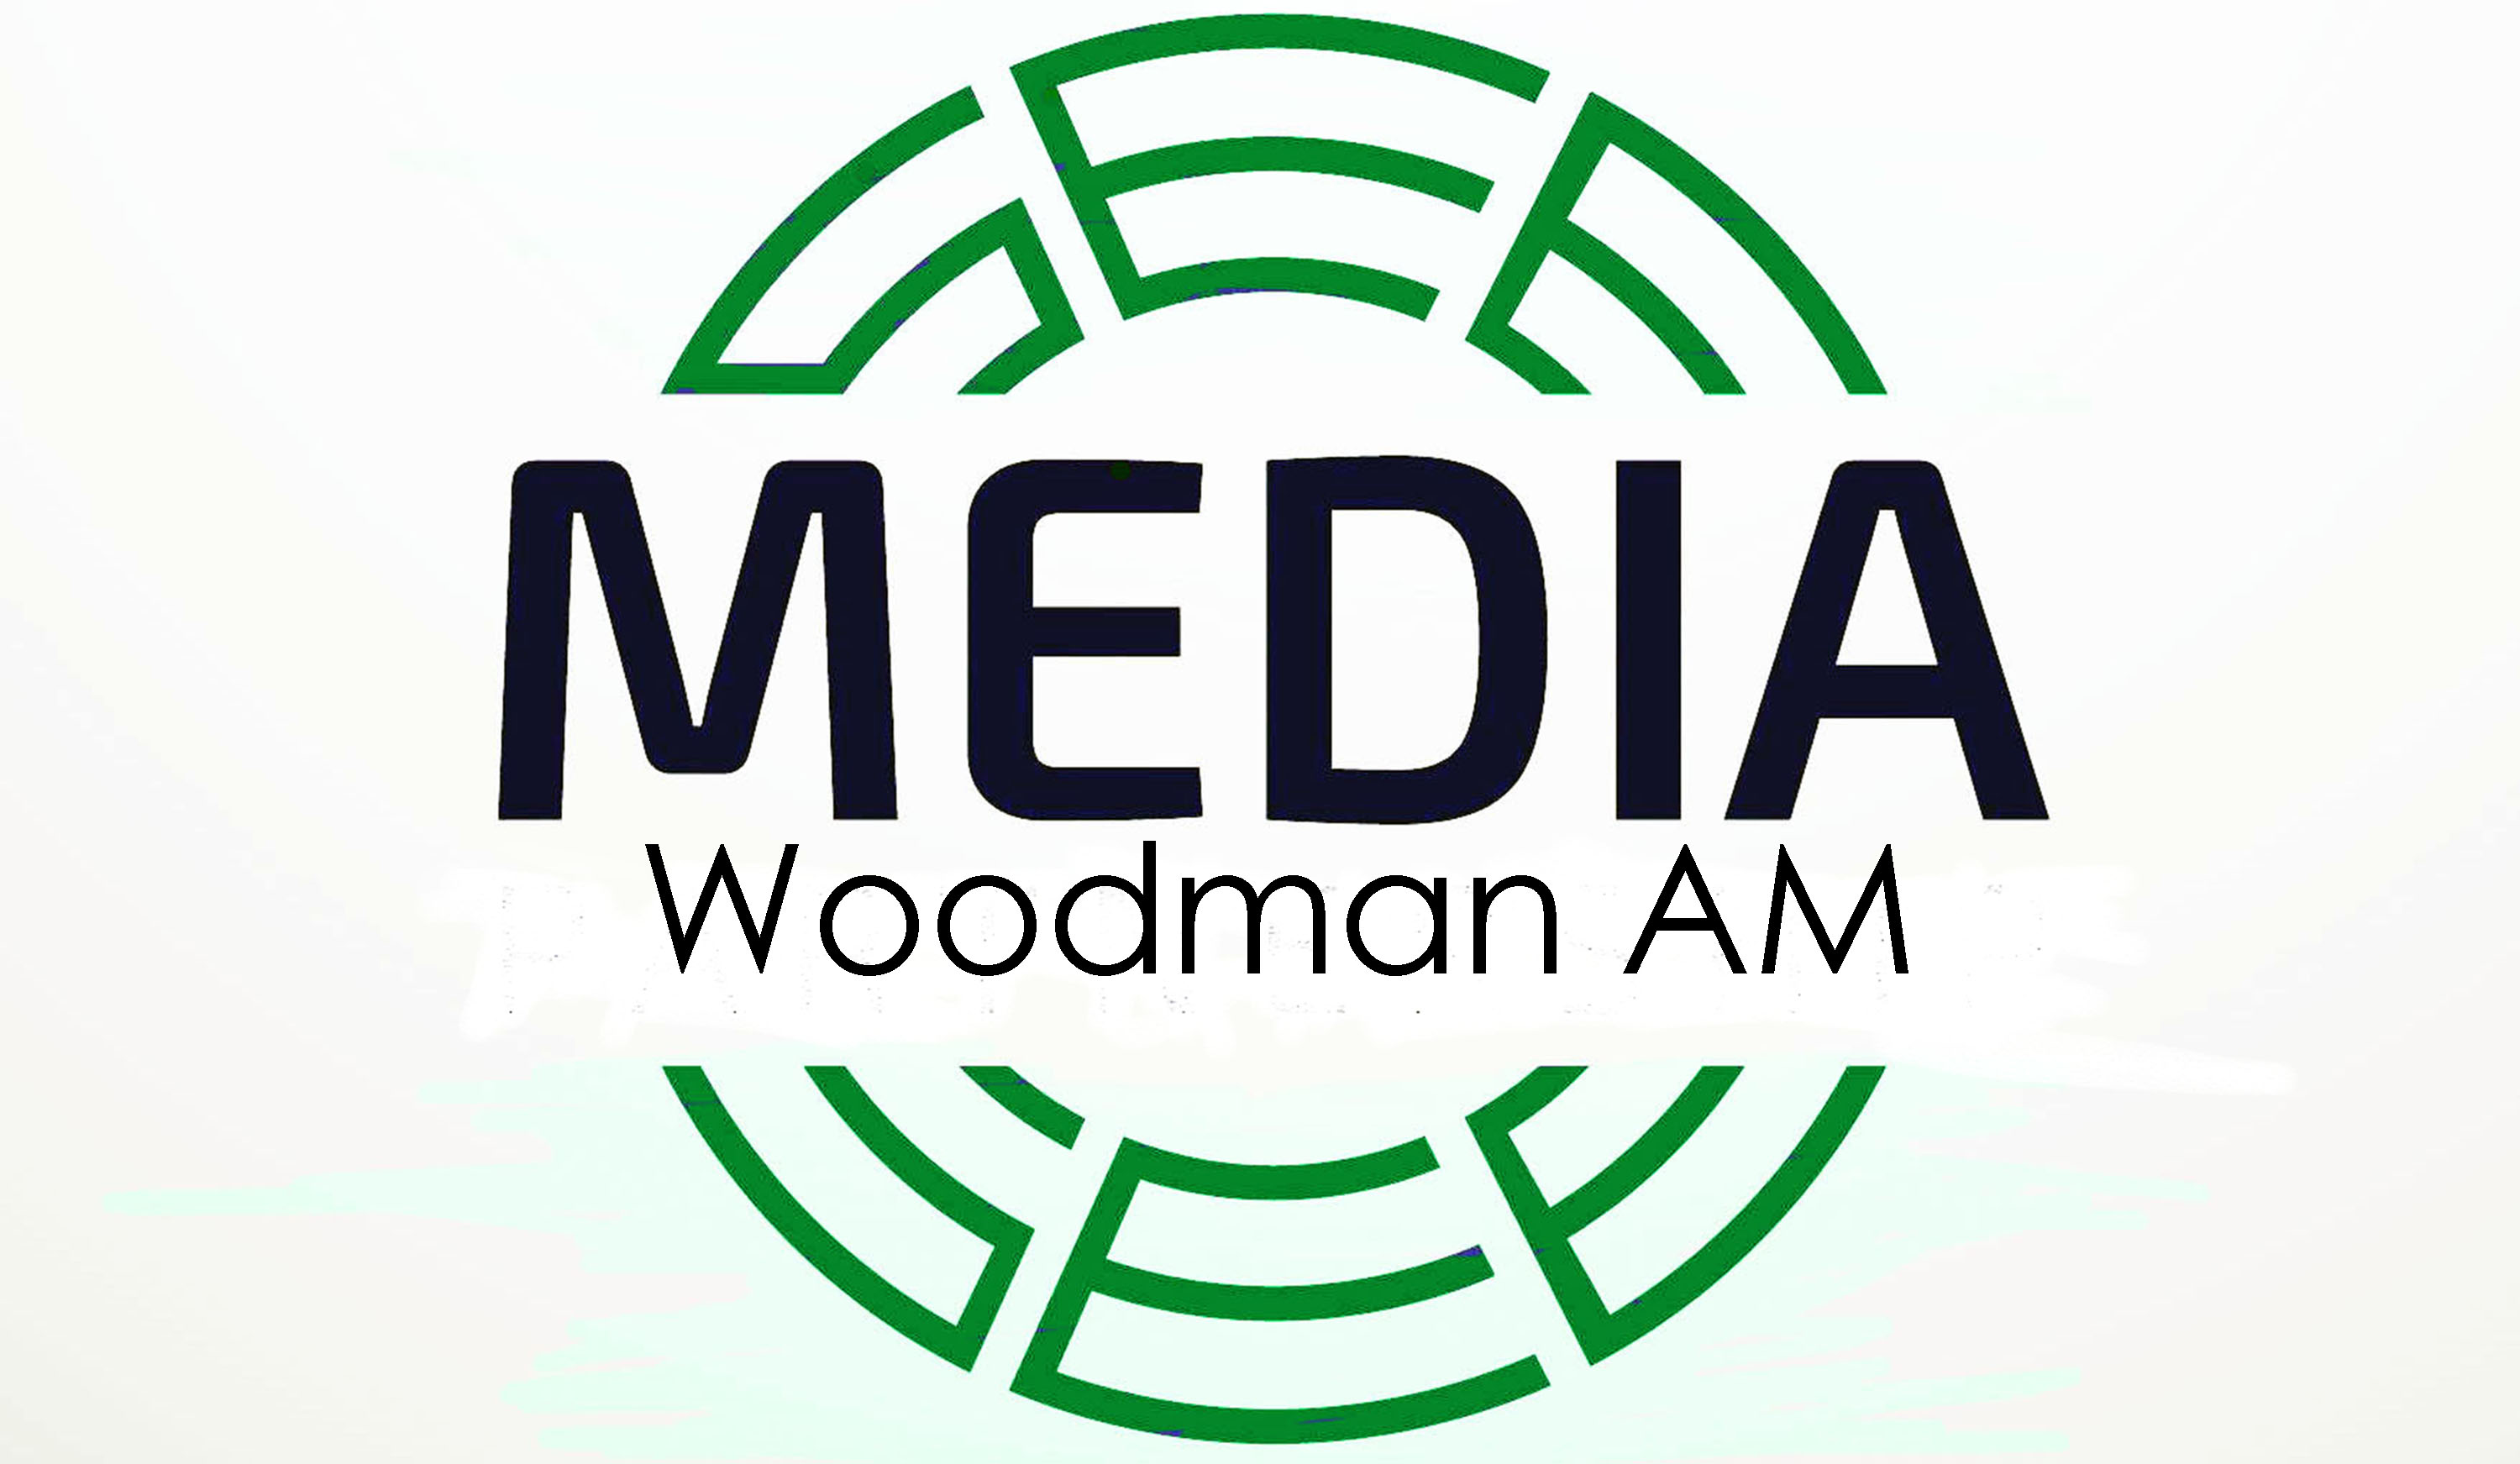 woodman am logo green